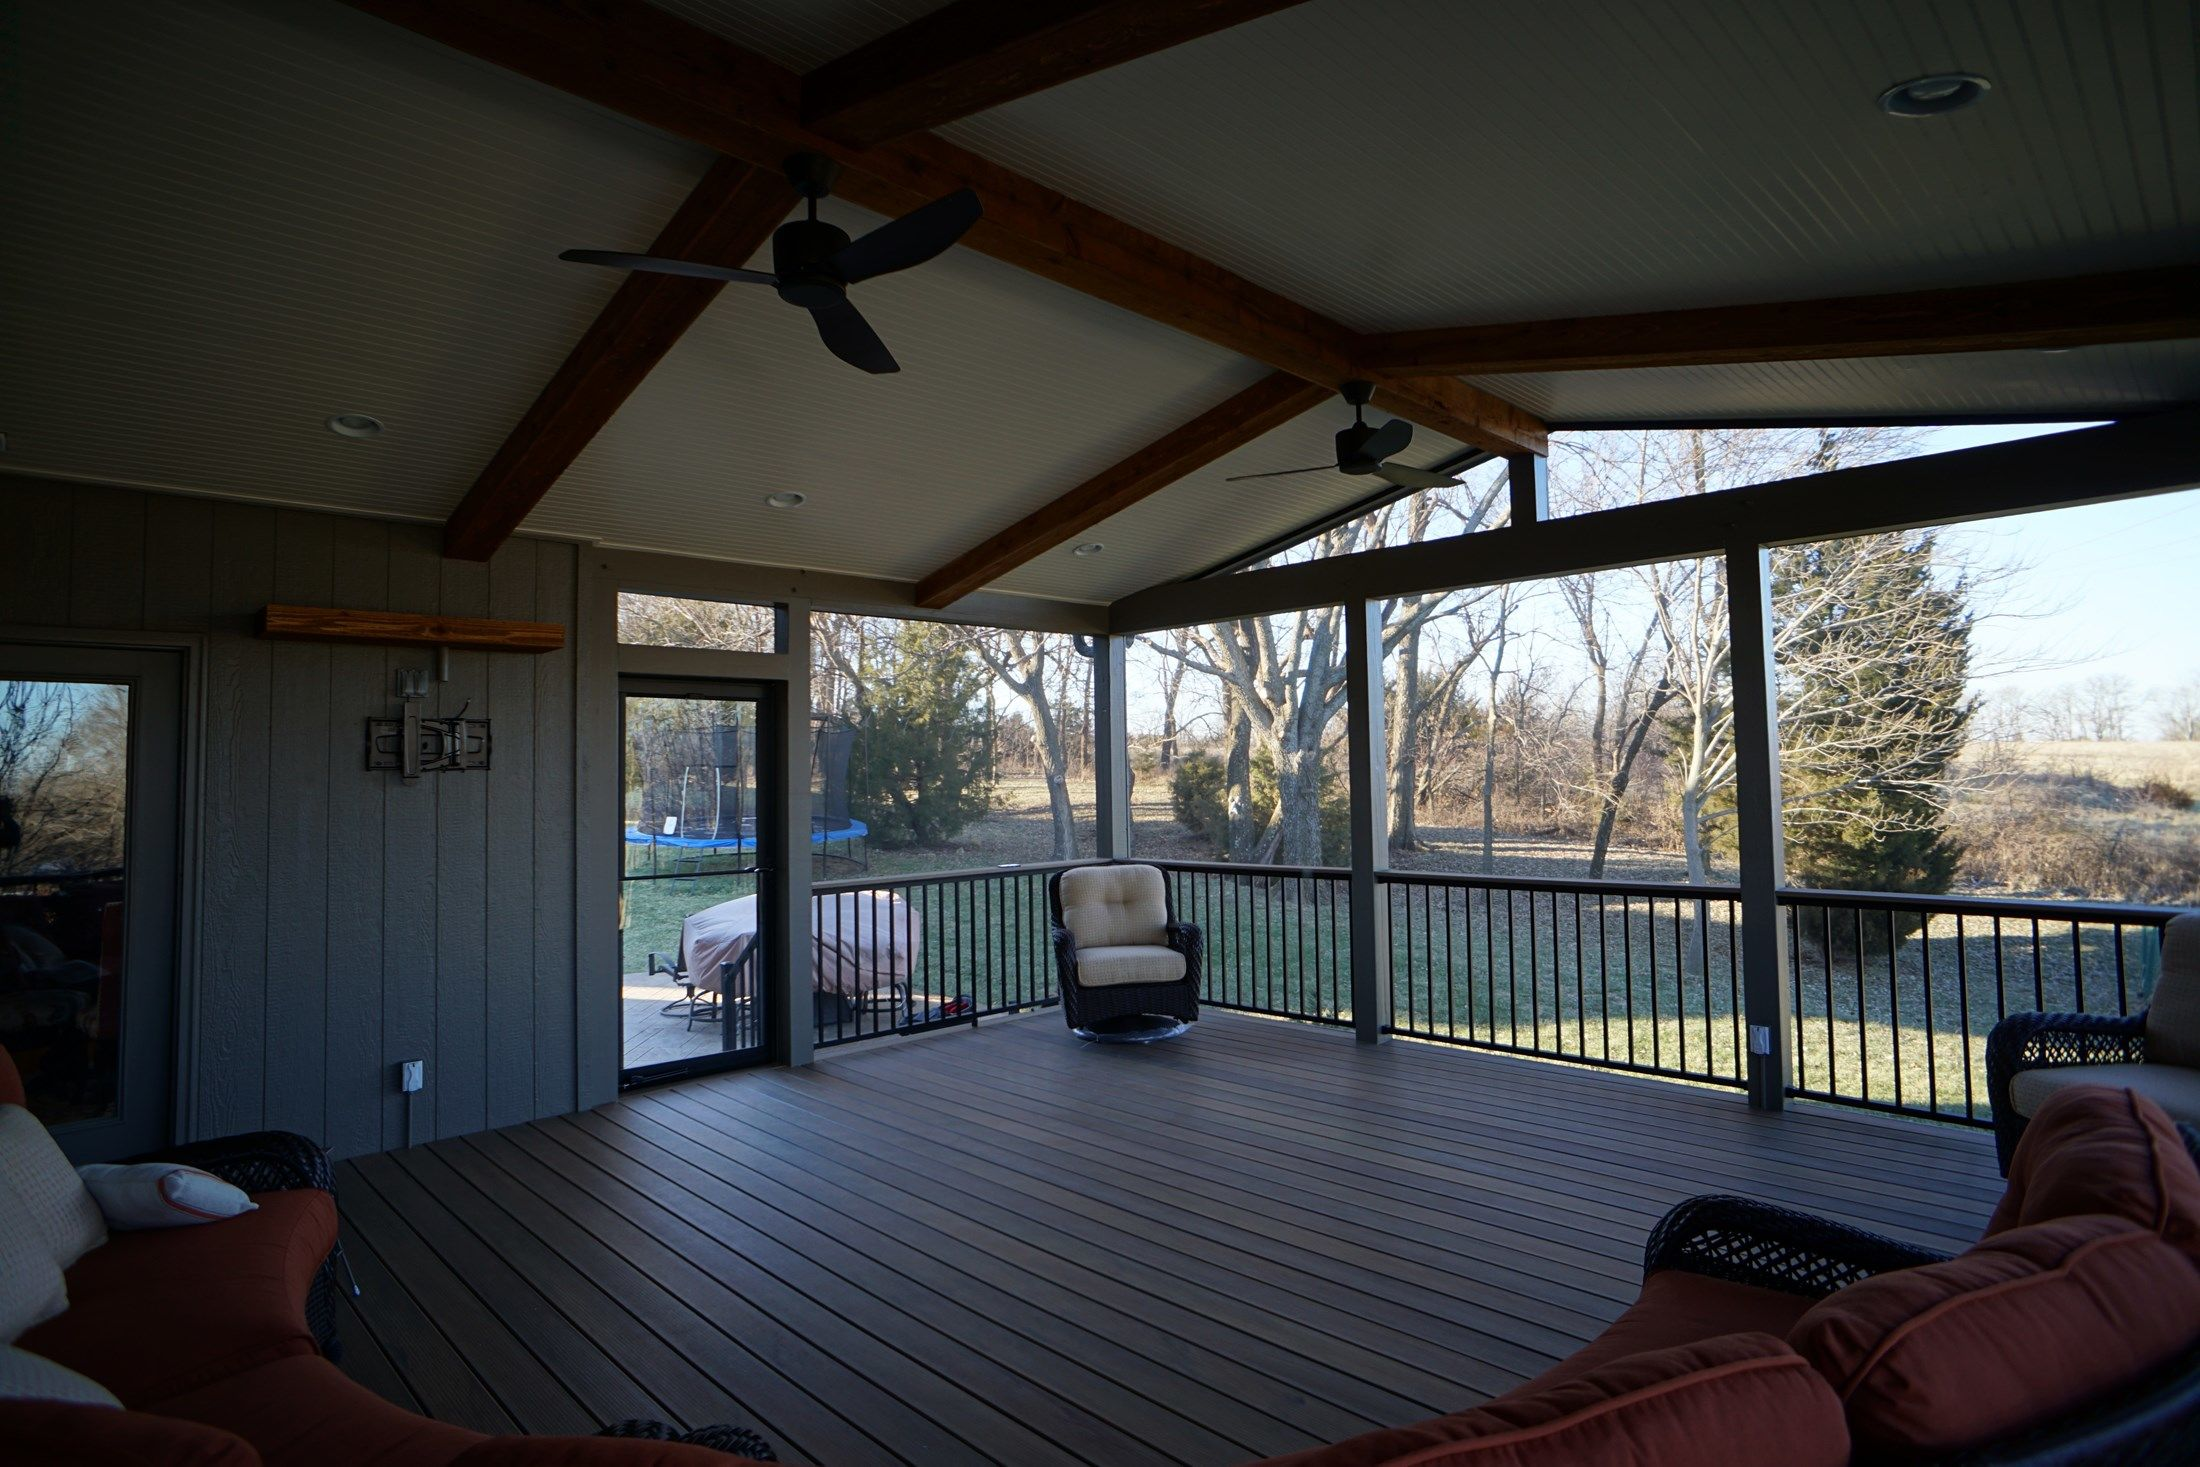 Gable Roof Screened Porch - Picture 5181